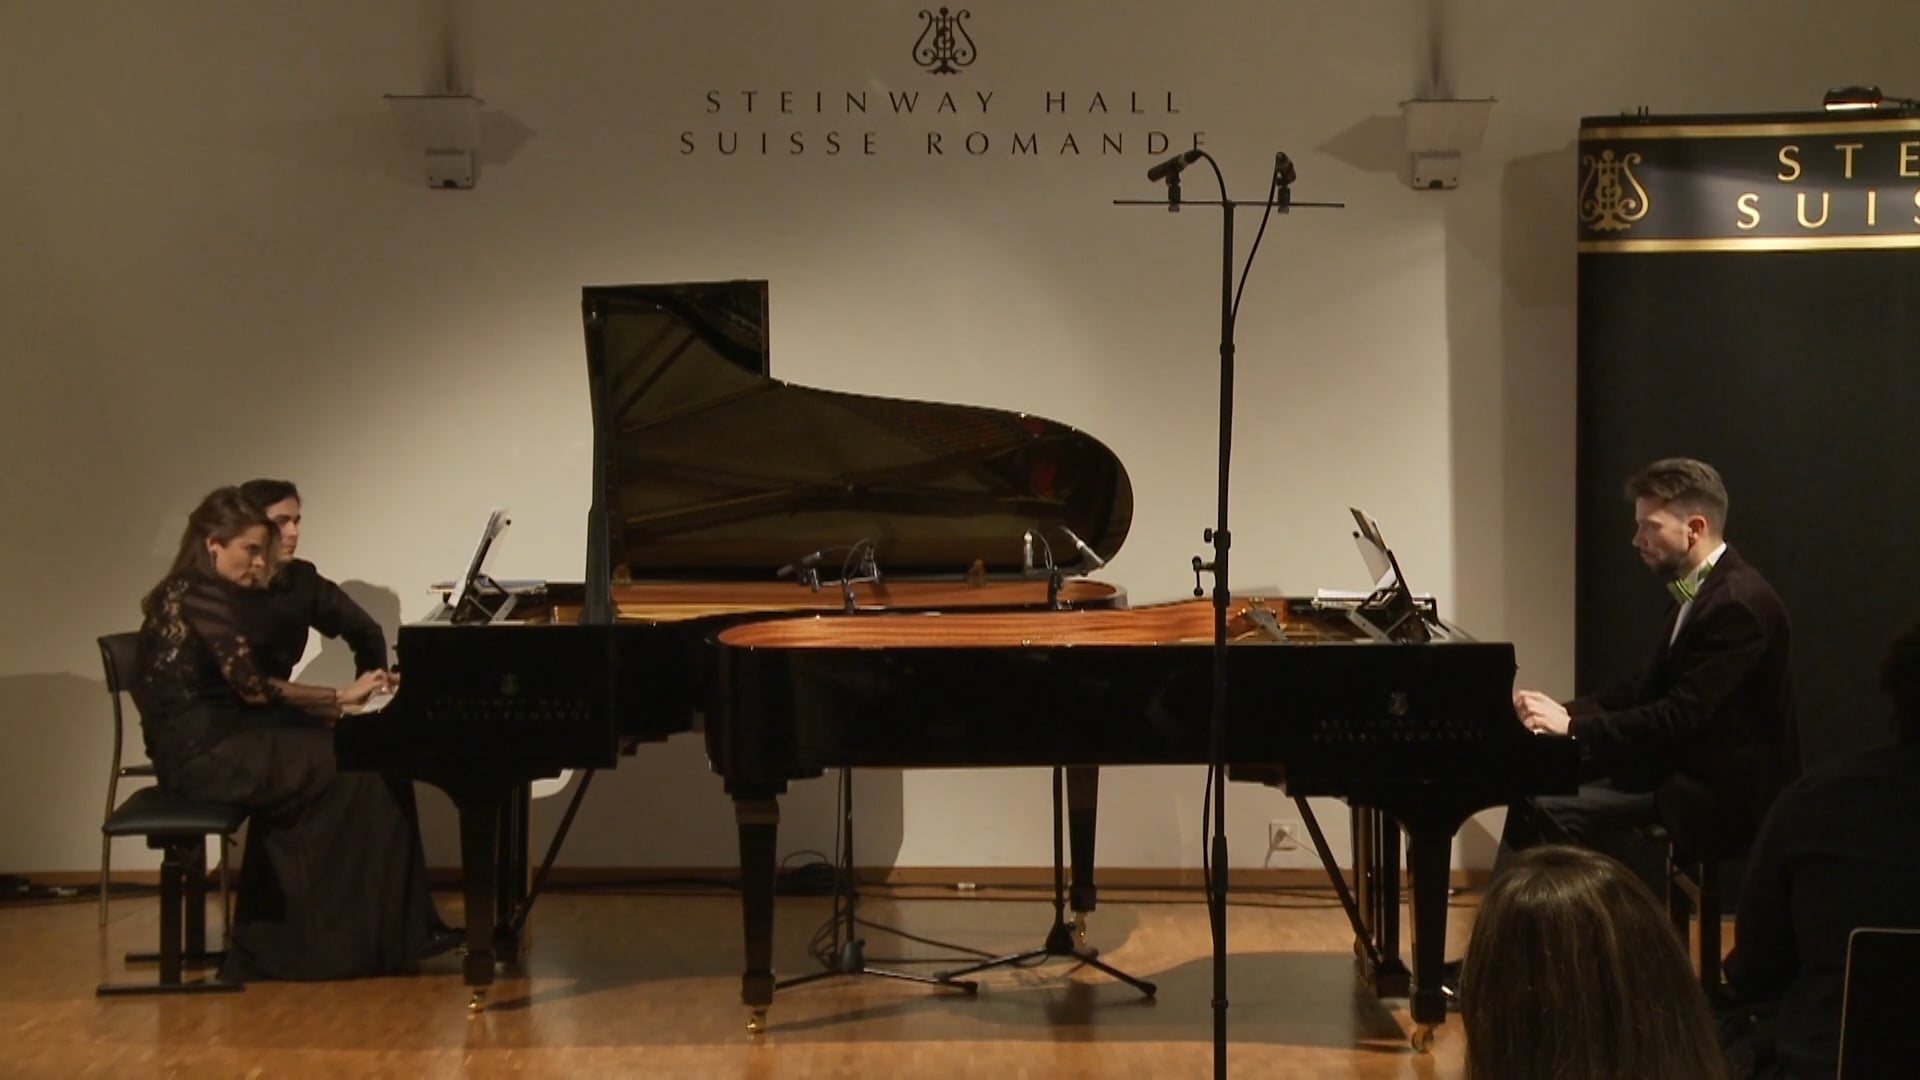 Piano Duo - Serguei Rachmaninov, Suite n° 2  for Two Pianos, IV. Tarantelle